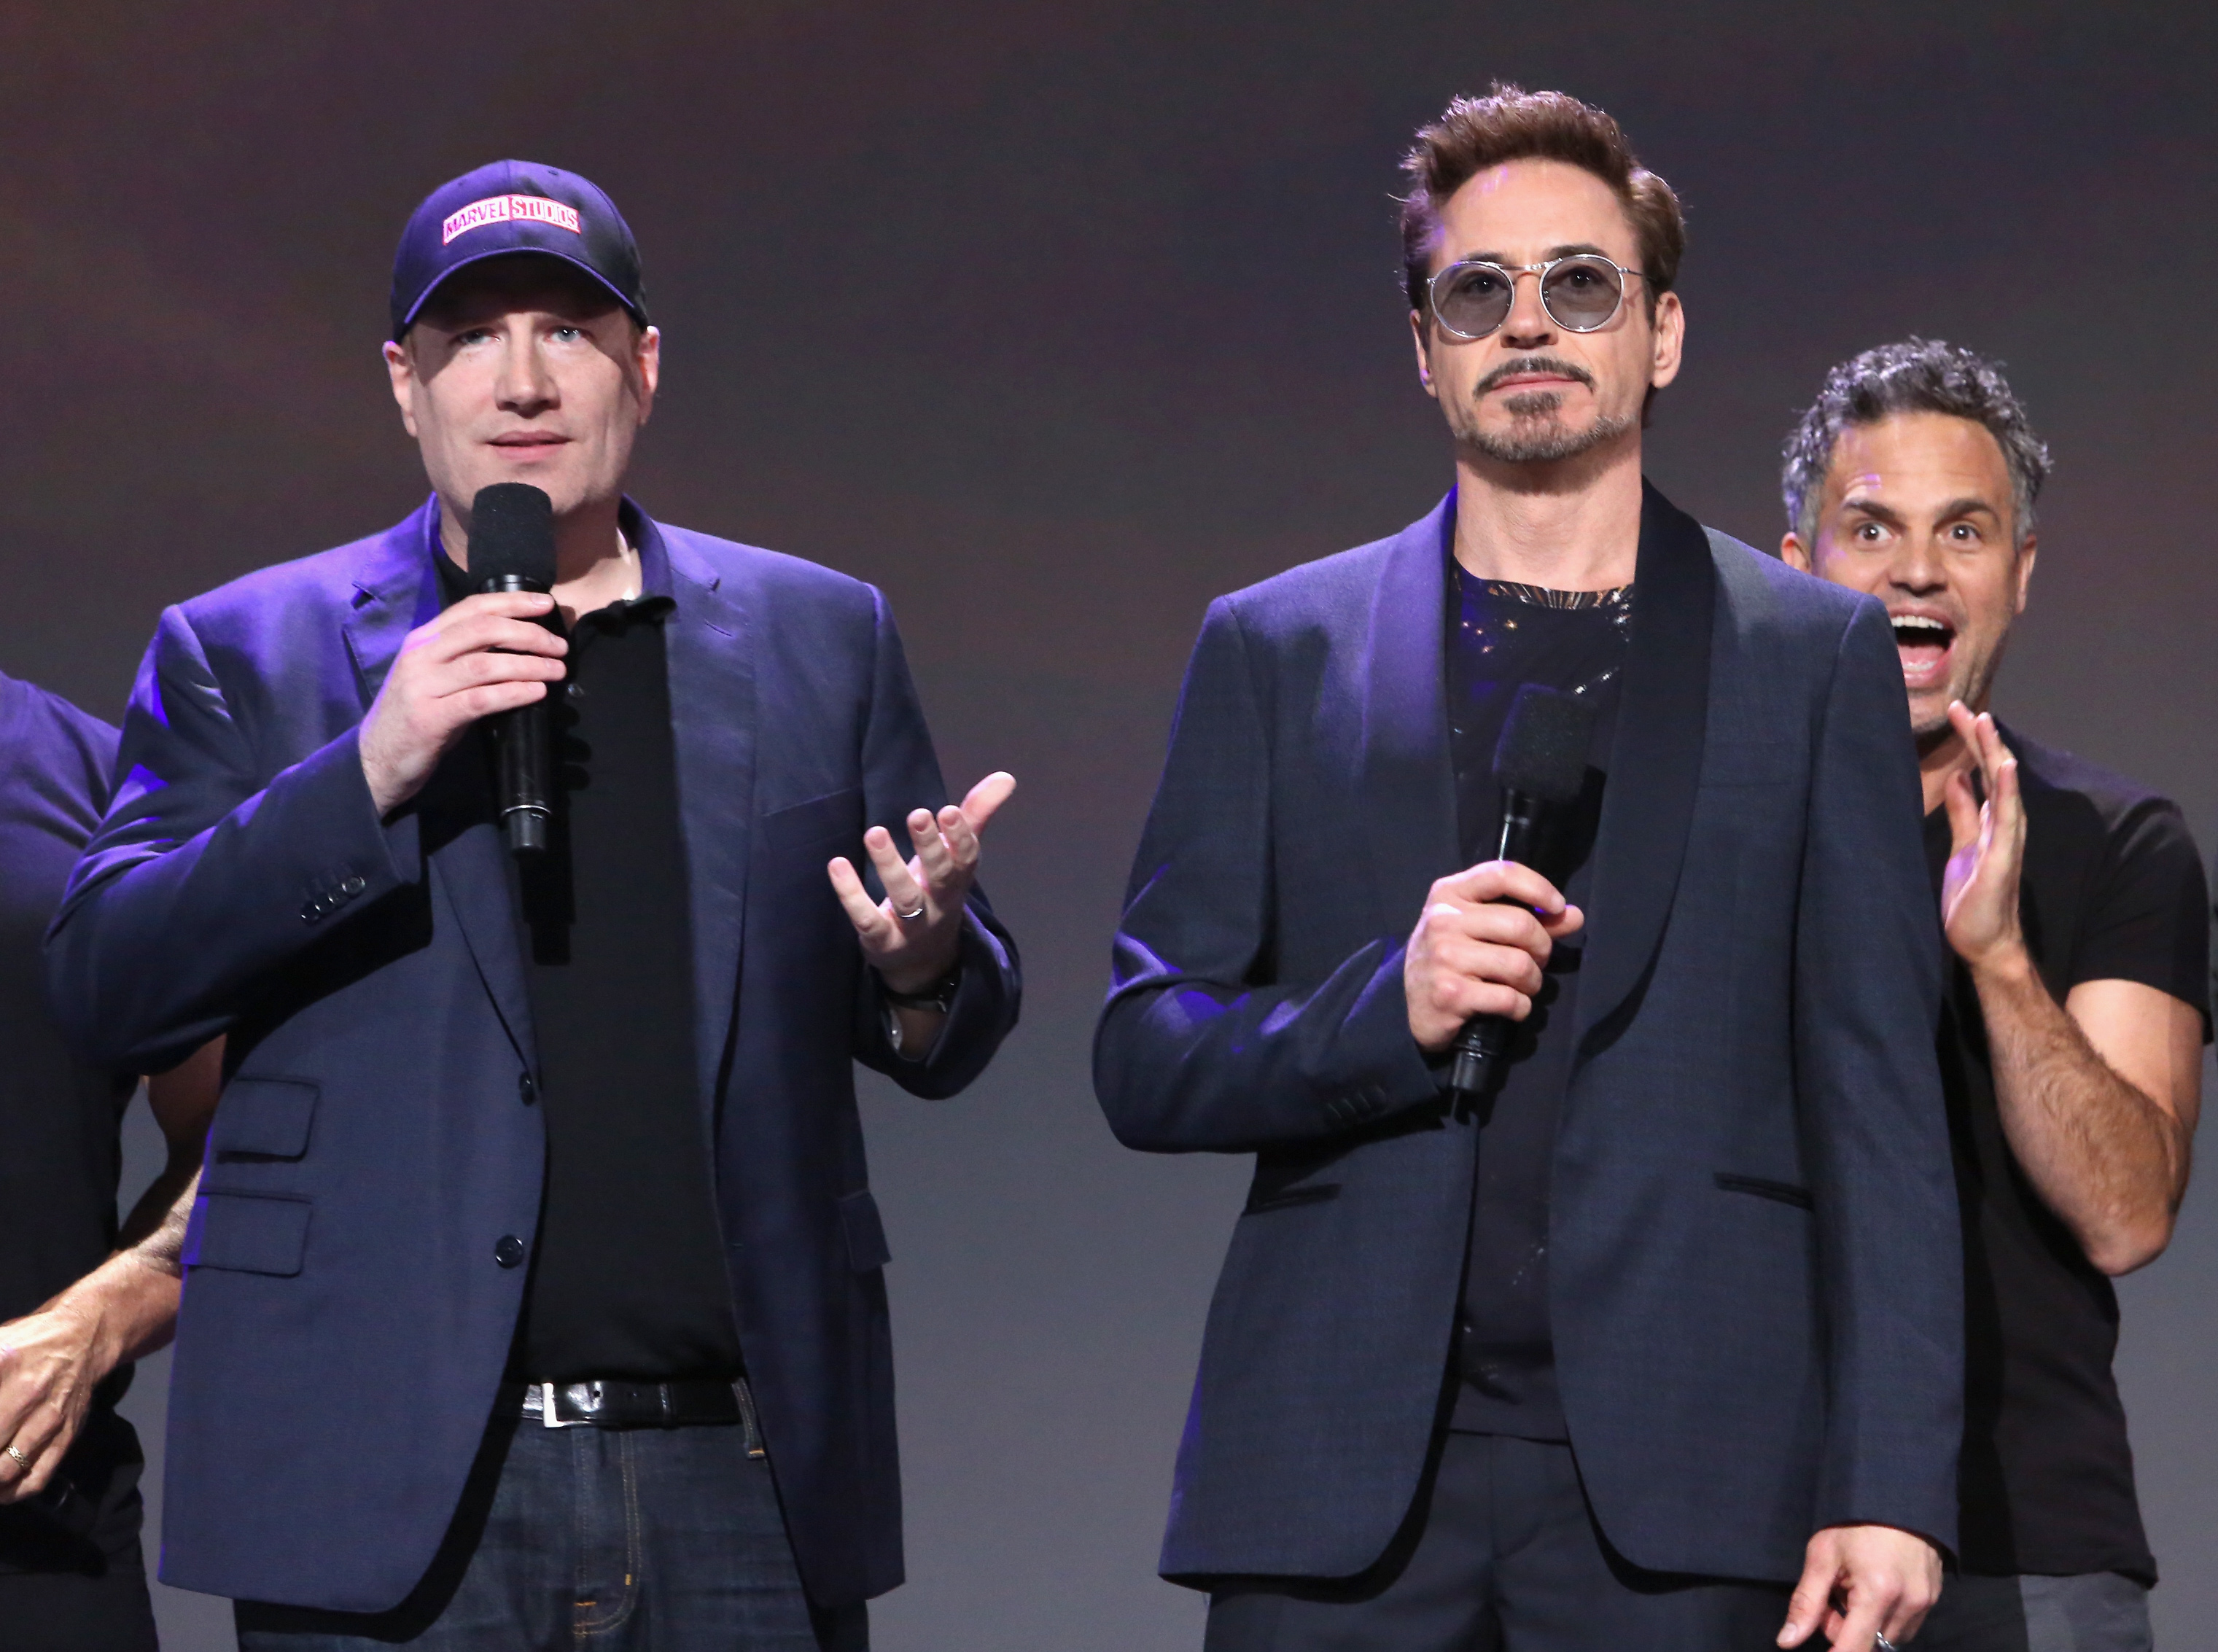 (L-R) Producer Kevin Feige, actors Robert Downey Jr. and Mark Ruffalo of AVENGERS: INFINITY WAR took part today in the Walt Disney Studios live action presentation at Disney's D23 EXPO 2017 in Anaheim, Calif. AVENGERS: INFINITY WAR will be released in U.S. theaters on May 4, 2018.